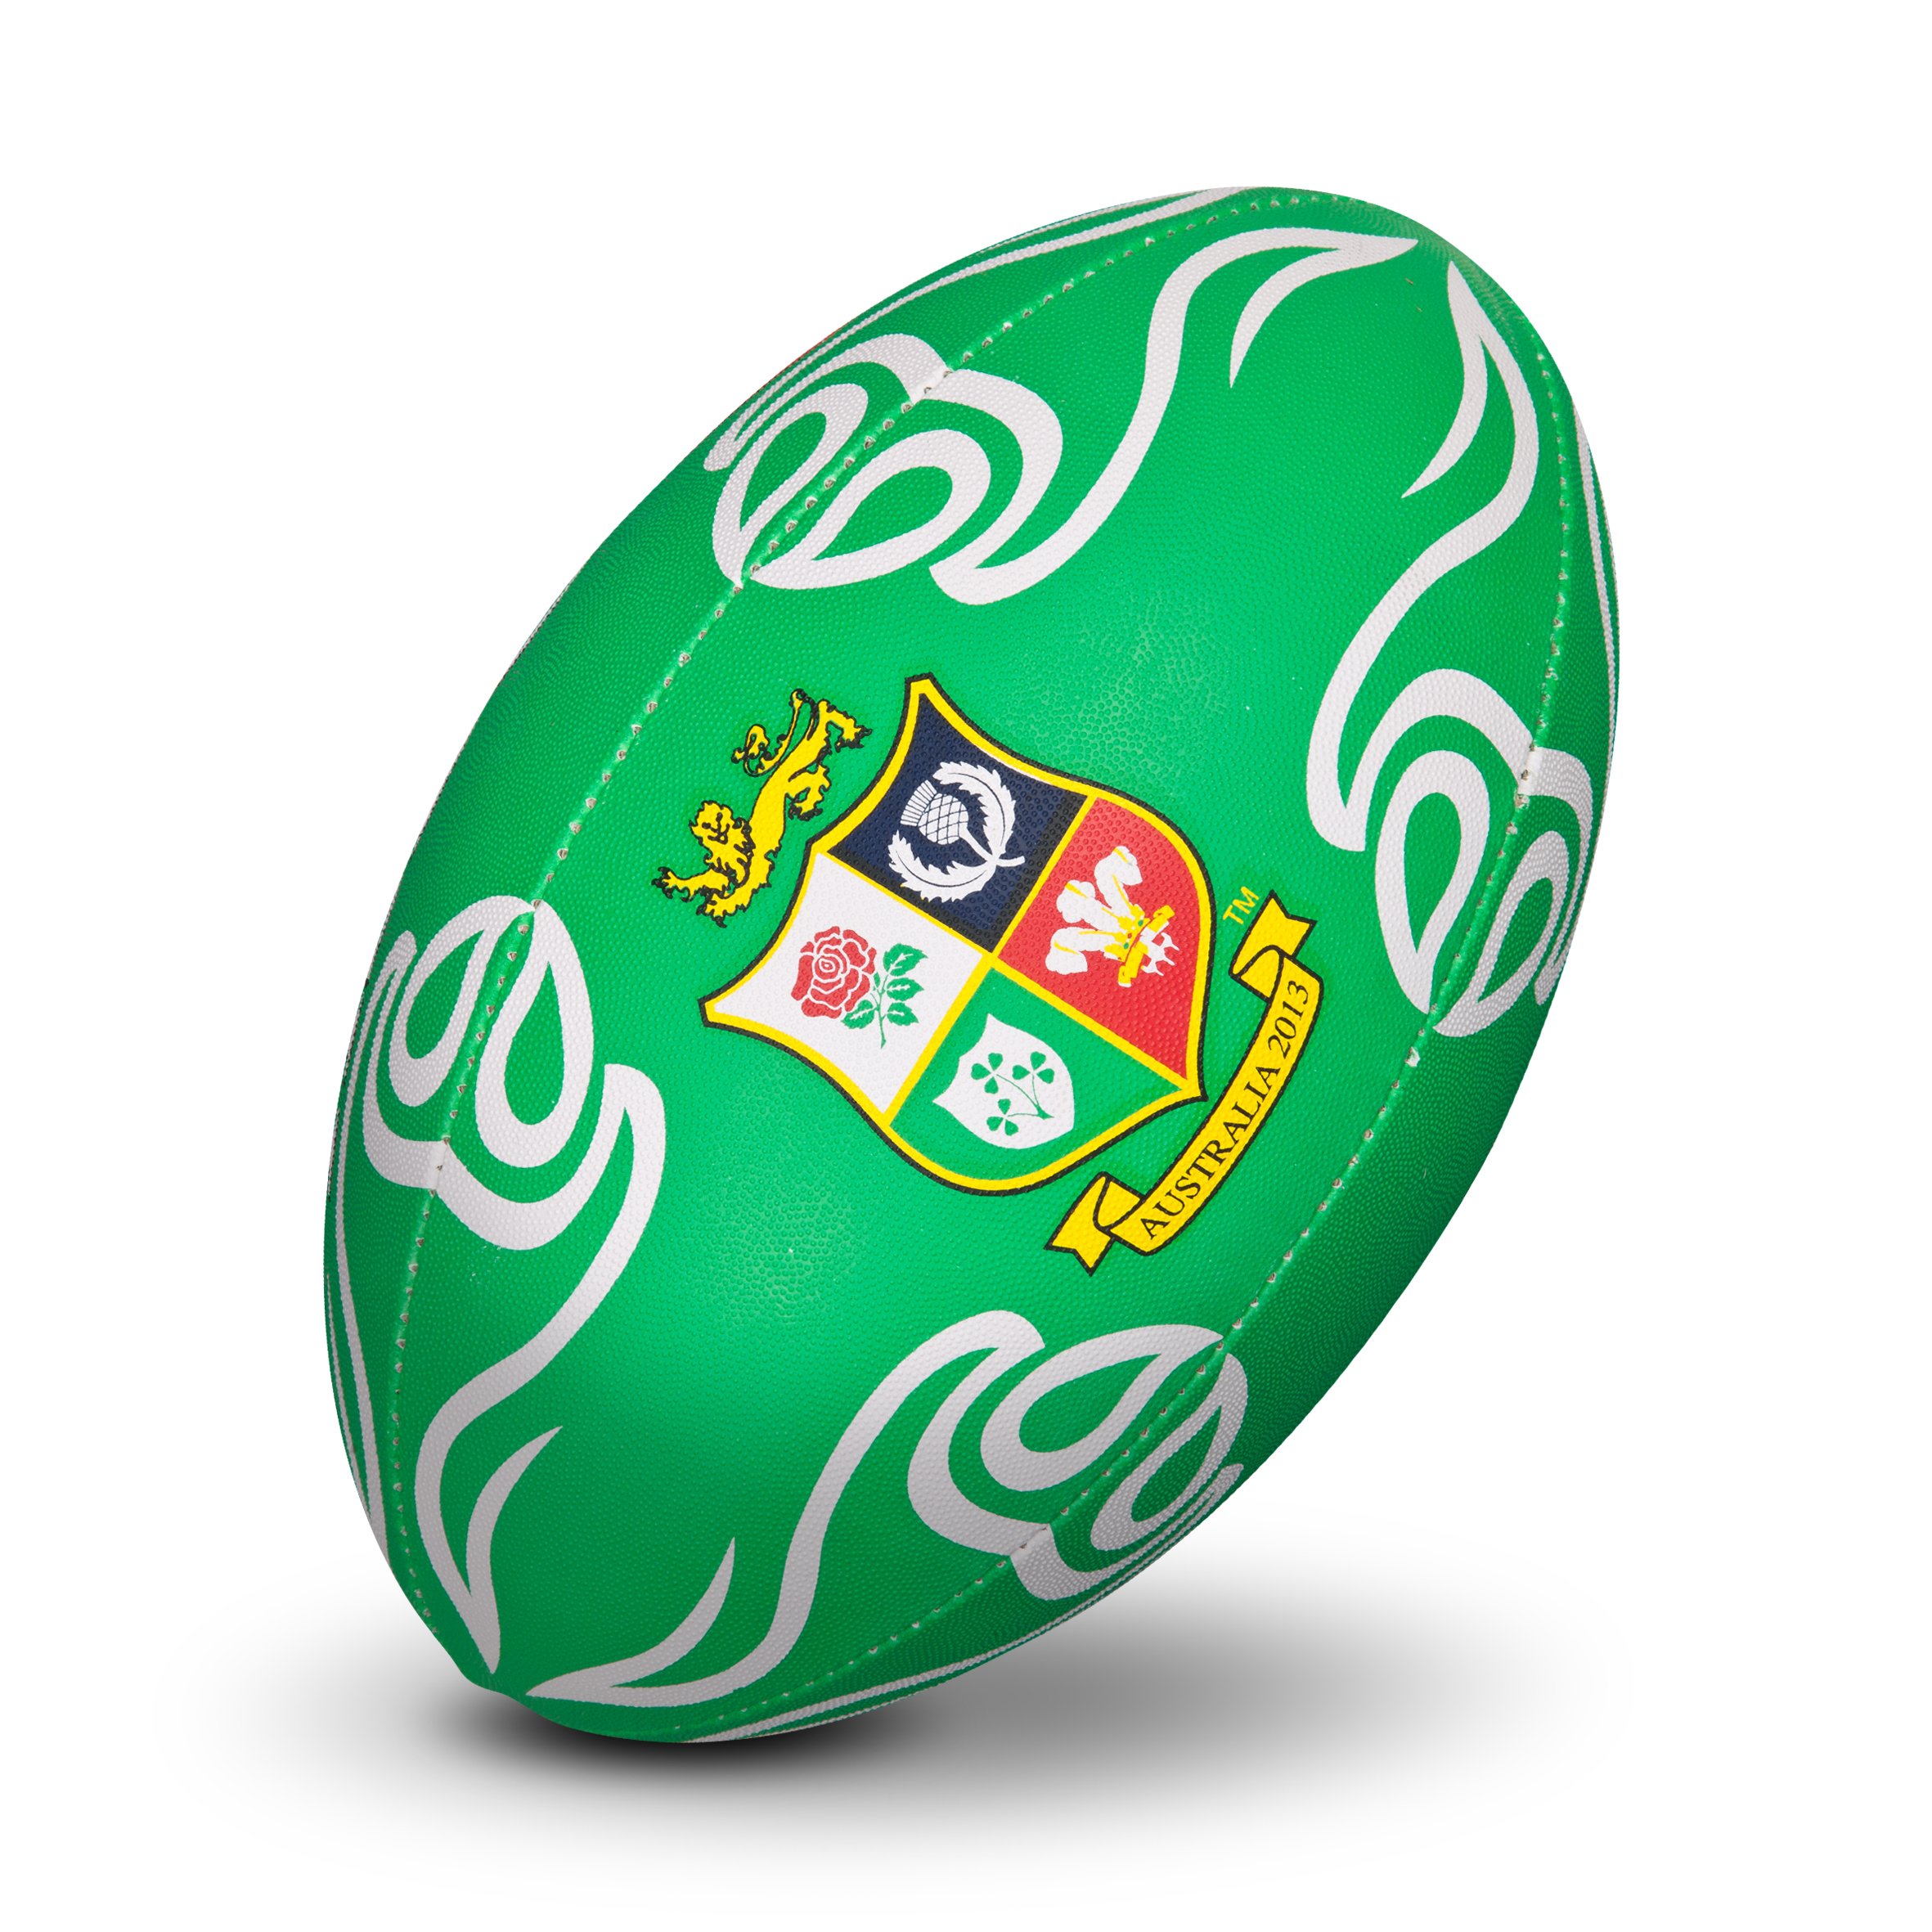 British and Irish Lions Supporters Rugby Ball - Green/White